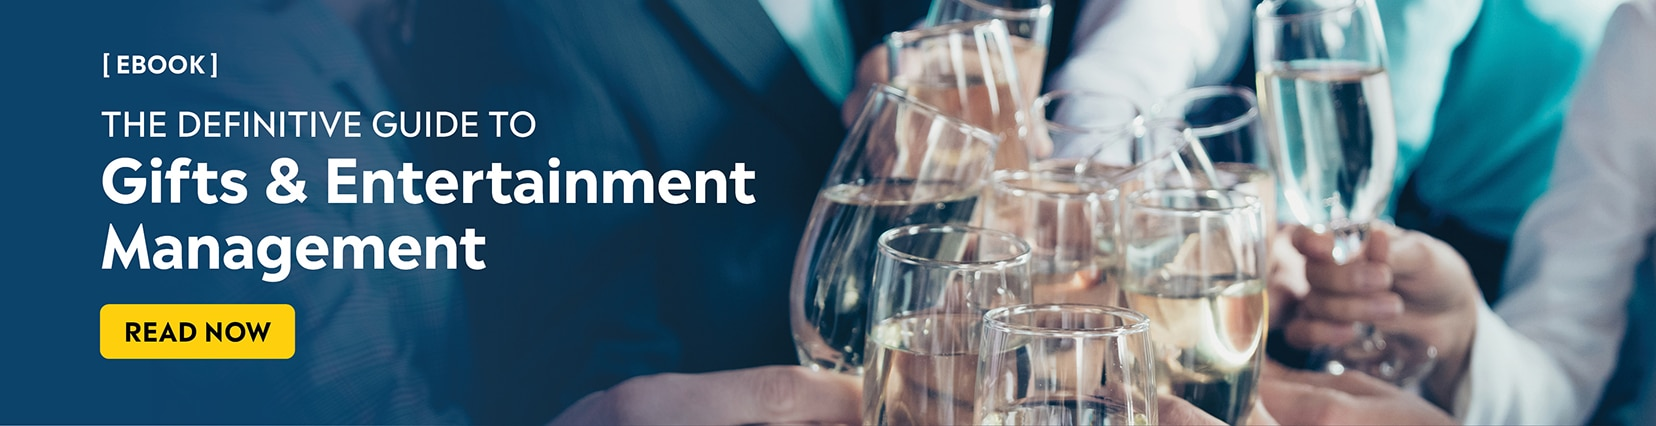 Blog CTA - eBook: The Definitive Guide to Gifts & Entertainment Management